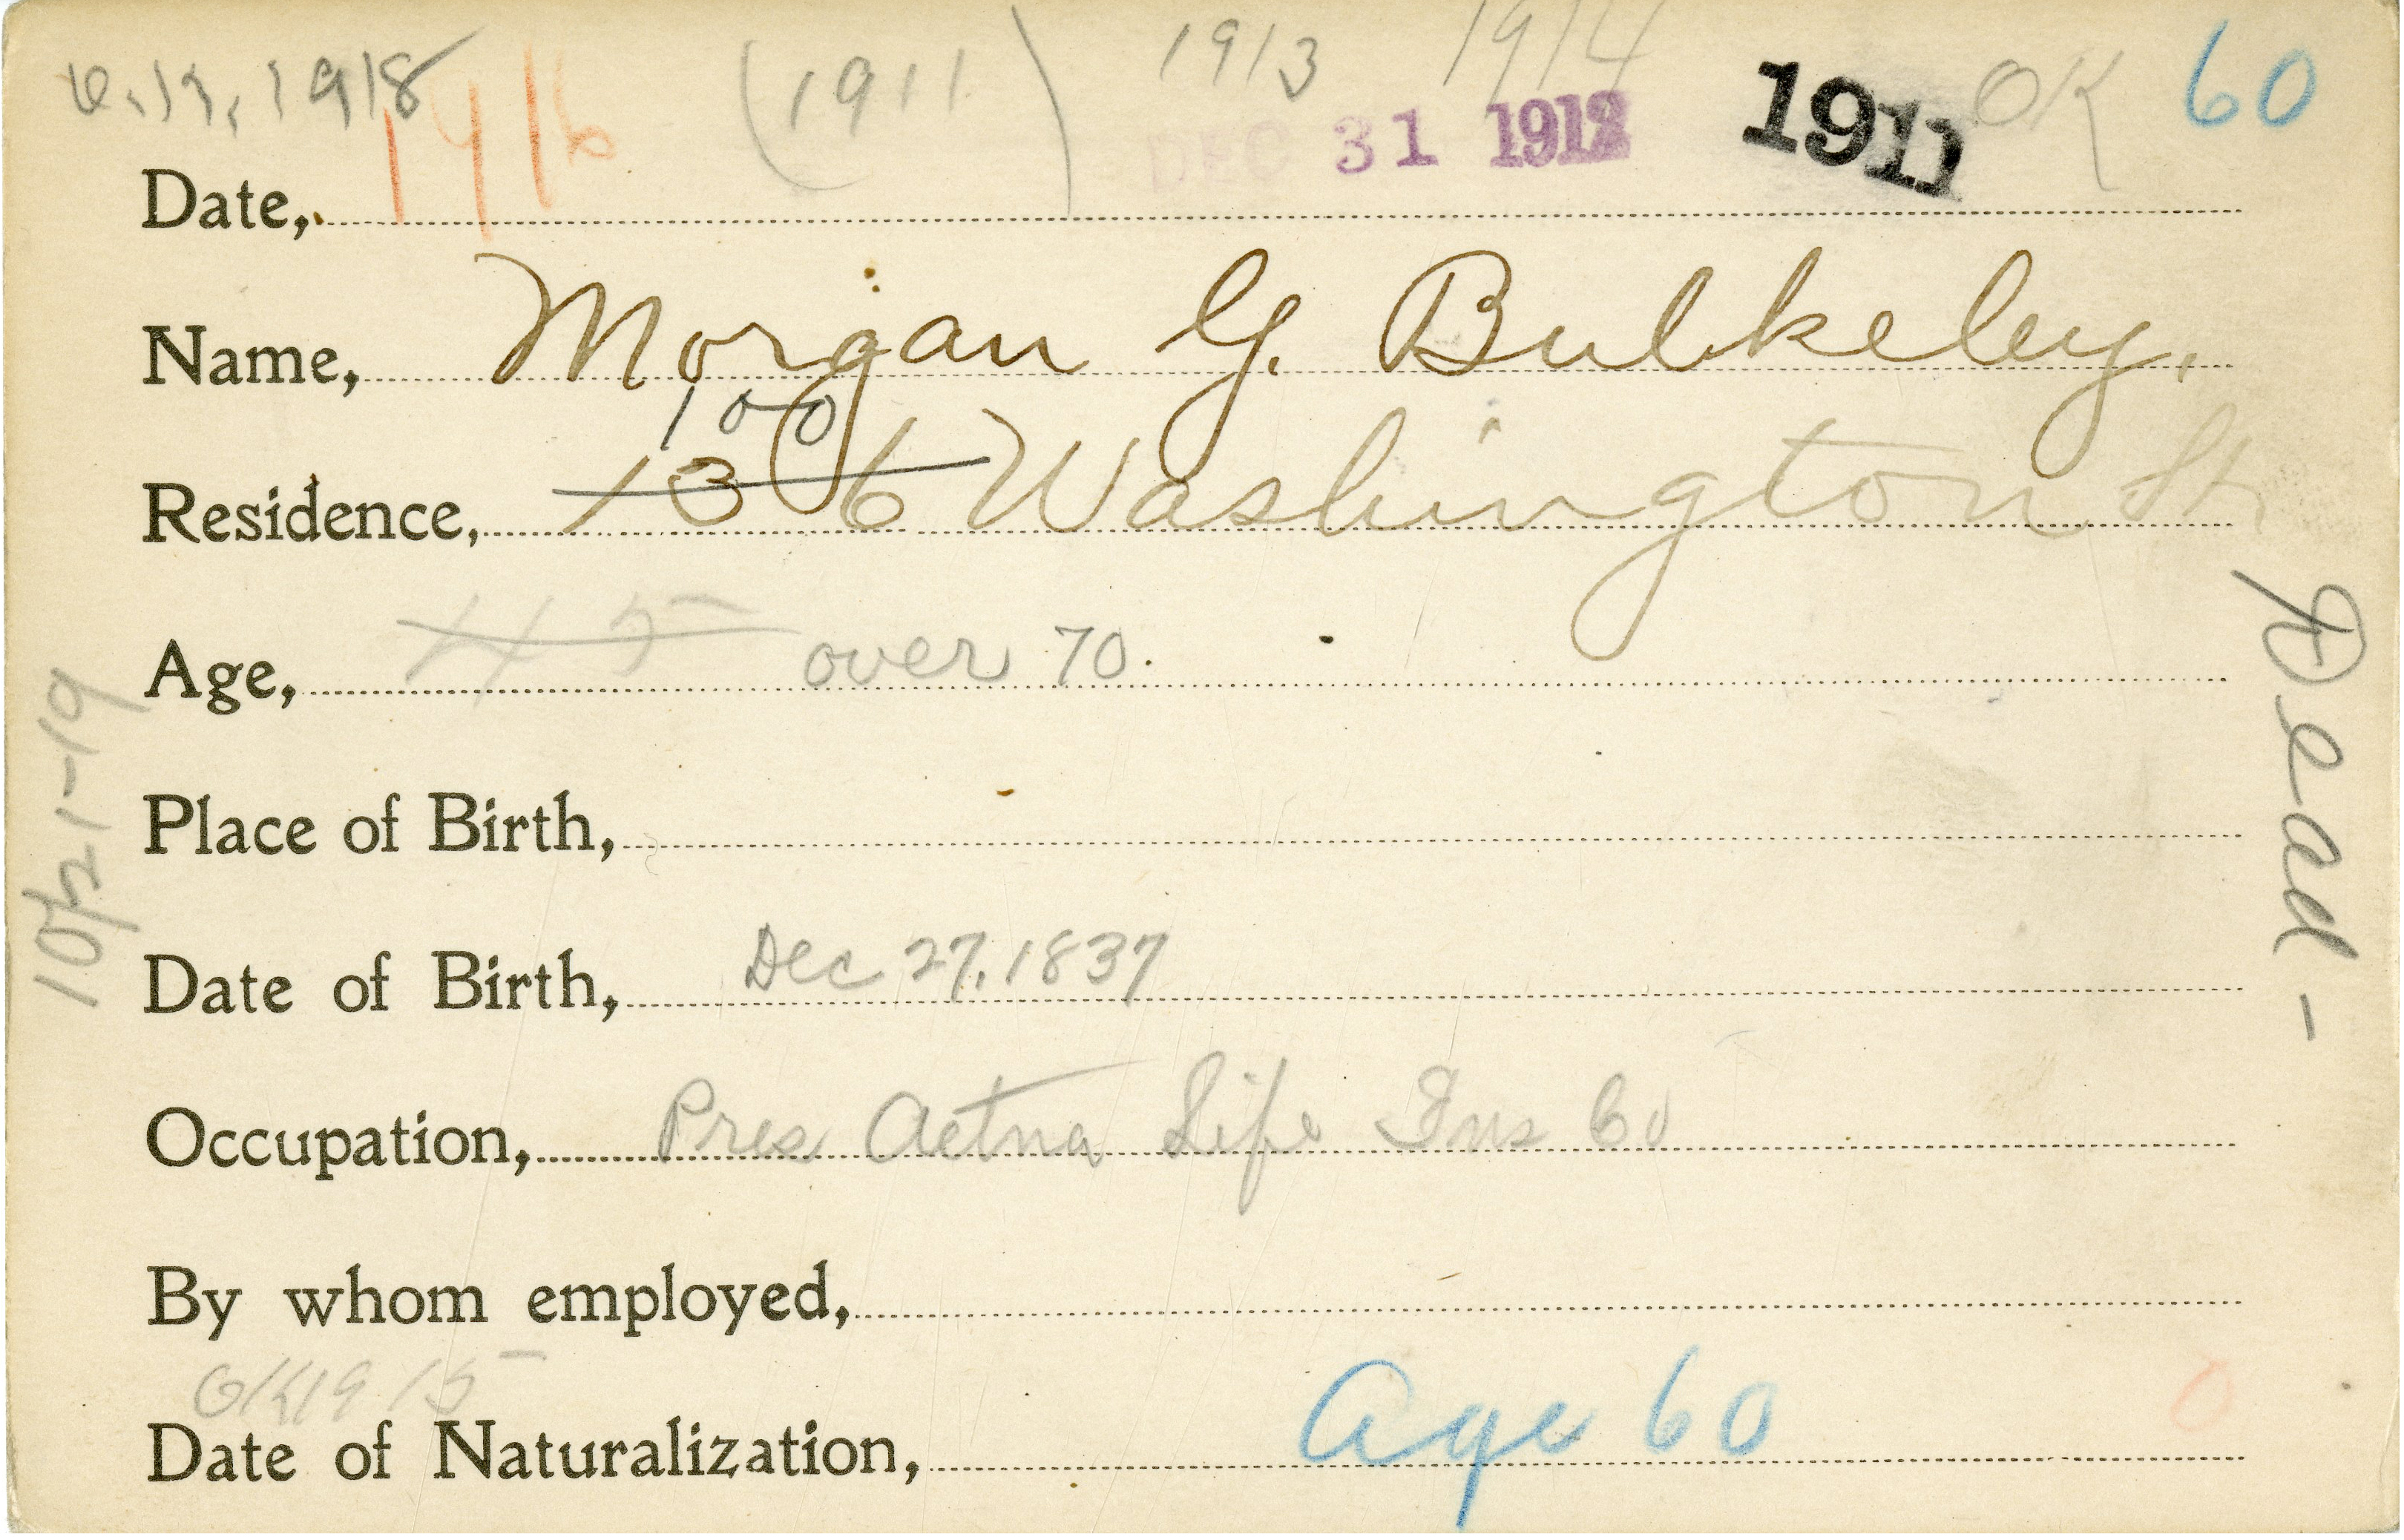 Morgan G. Bulkeley, Voter Registration Card